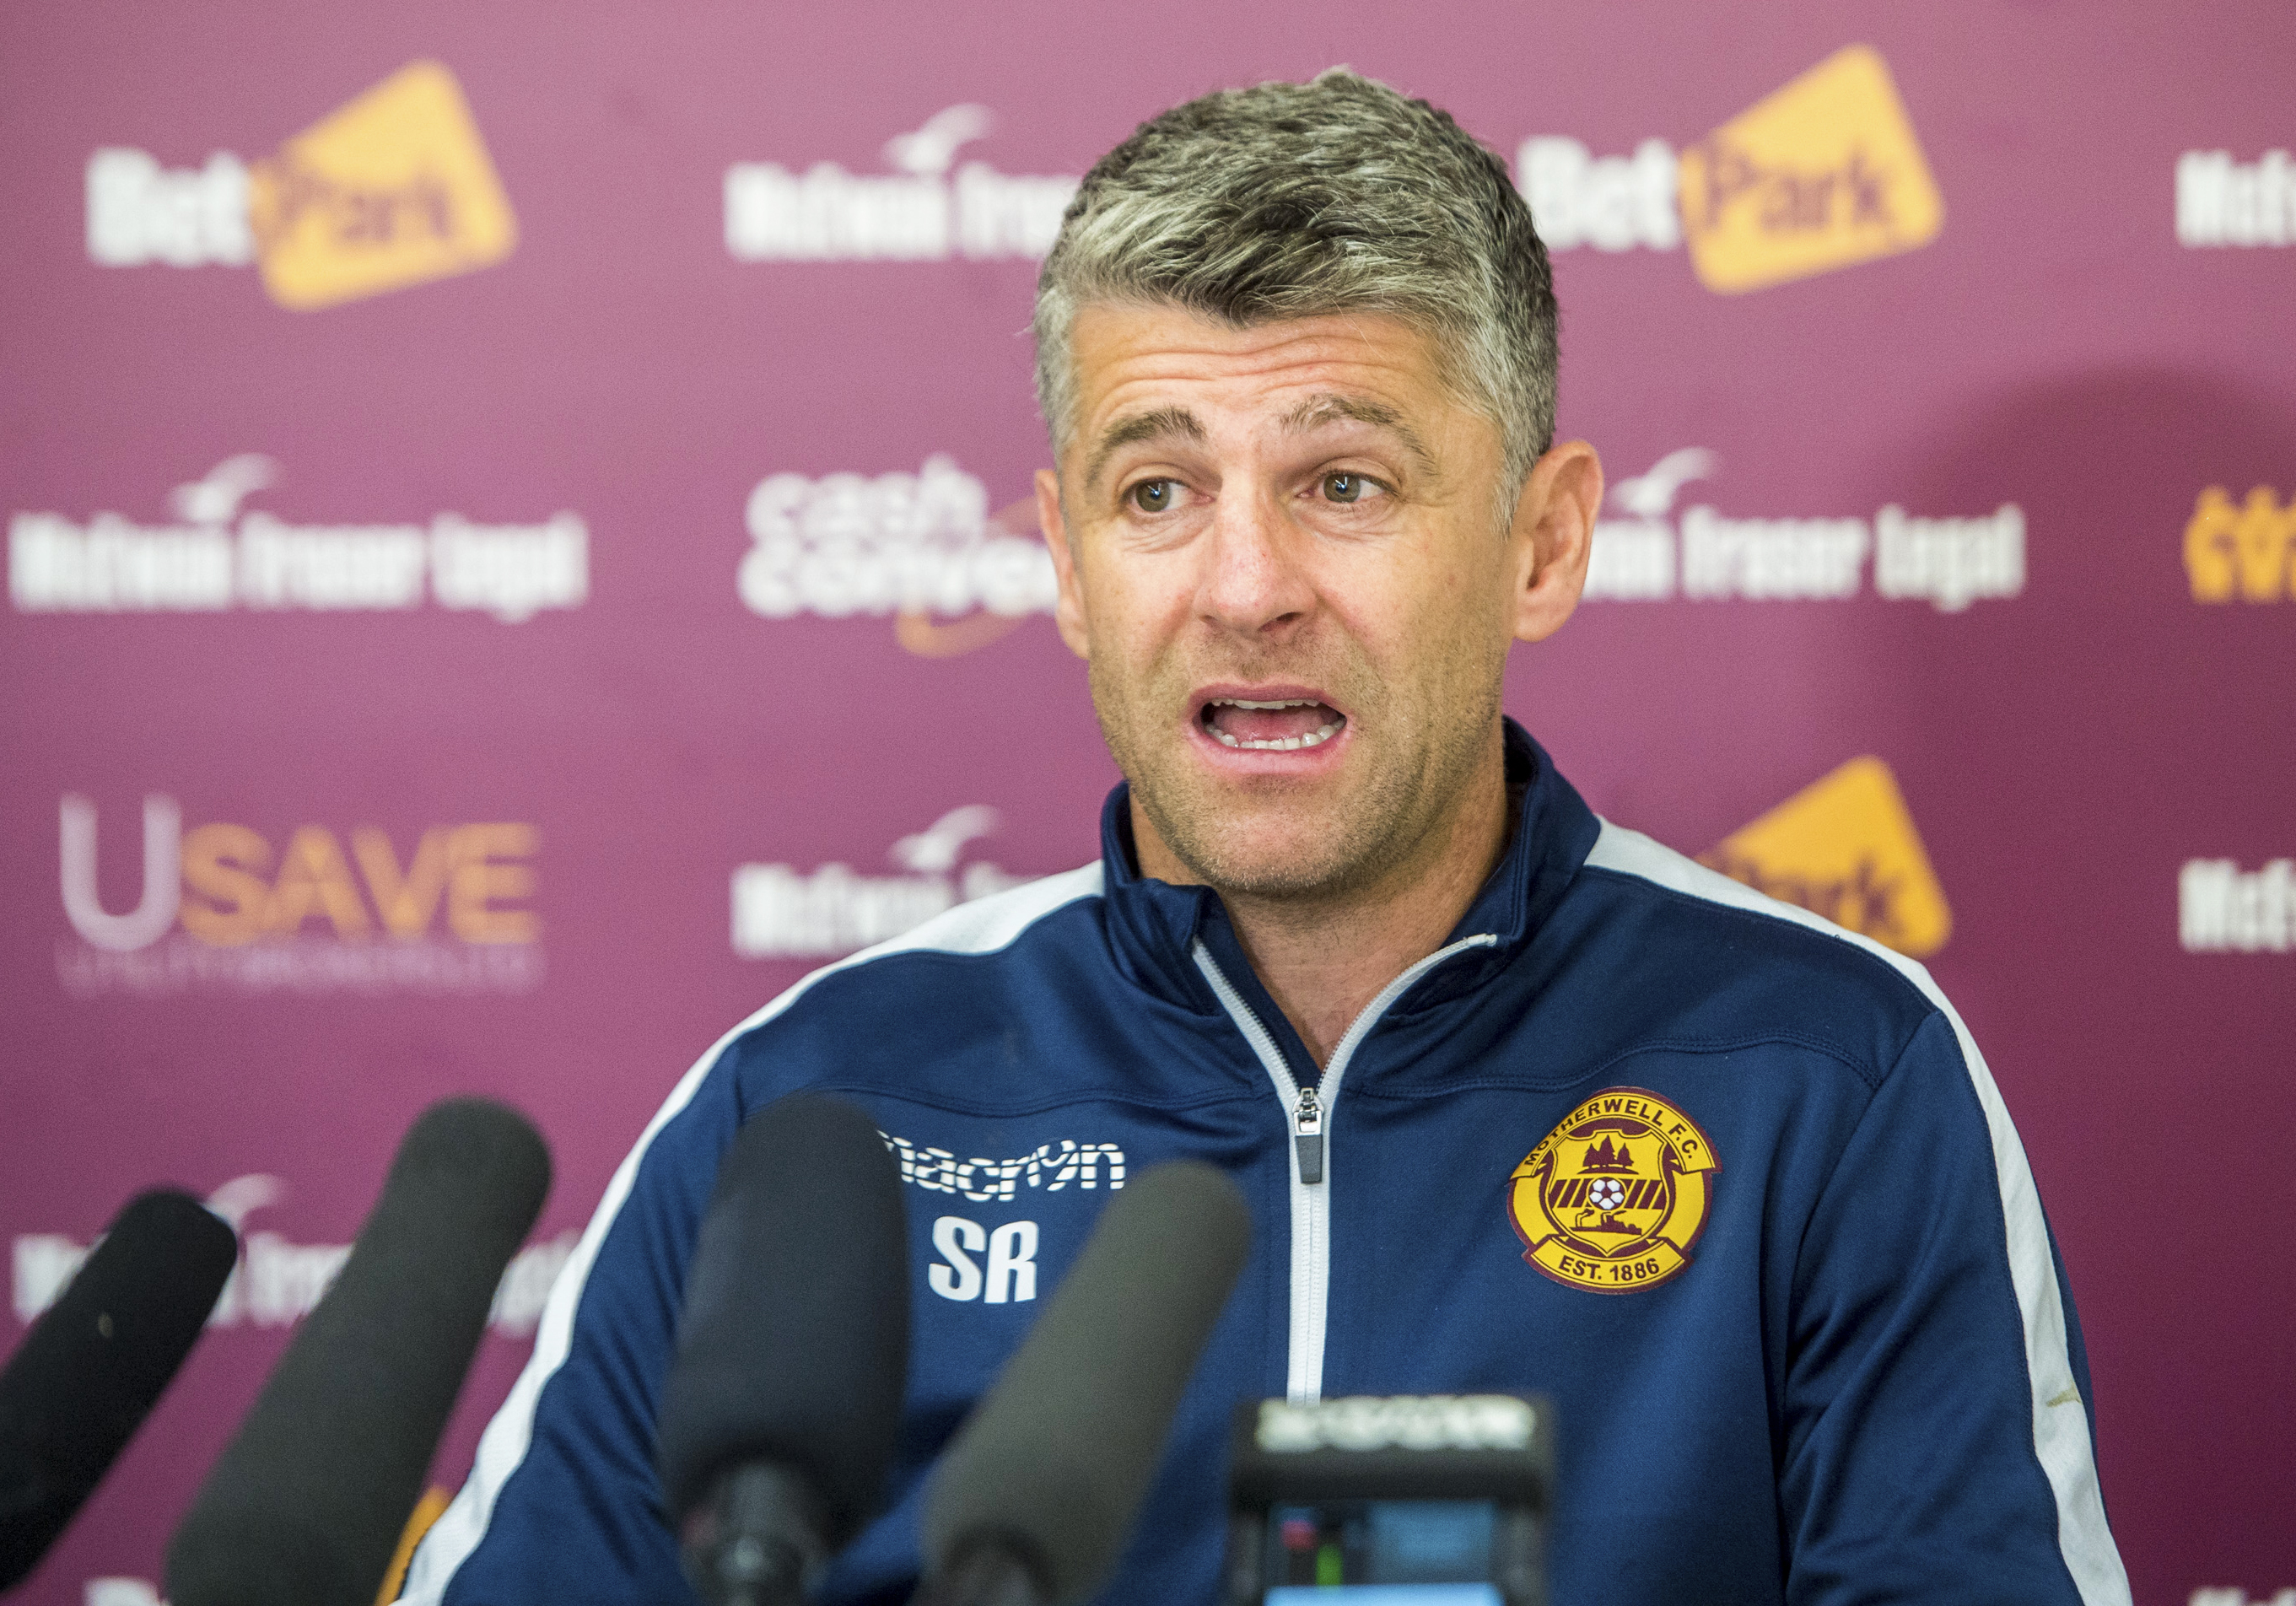 Motherwell Manager Stephen Robinson speaks to the media ahead of Sunday's Betfred Cup Semi Final against Rangers. (SNS)